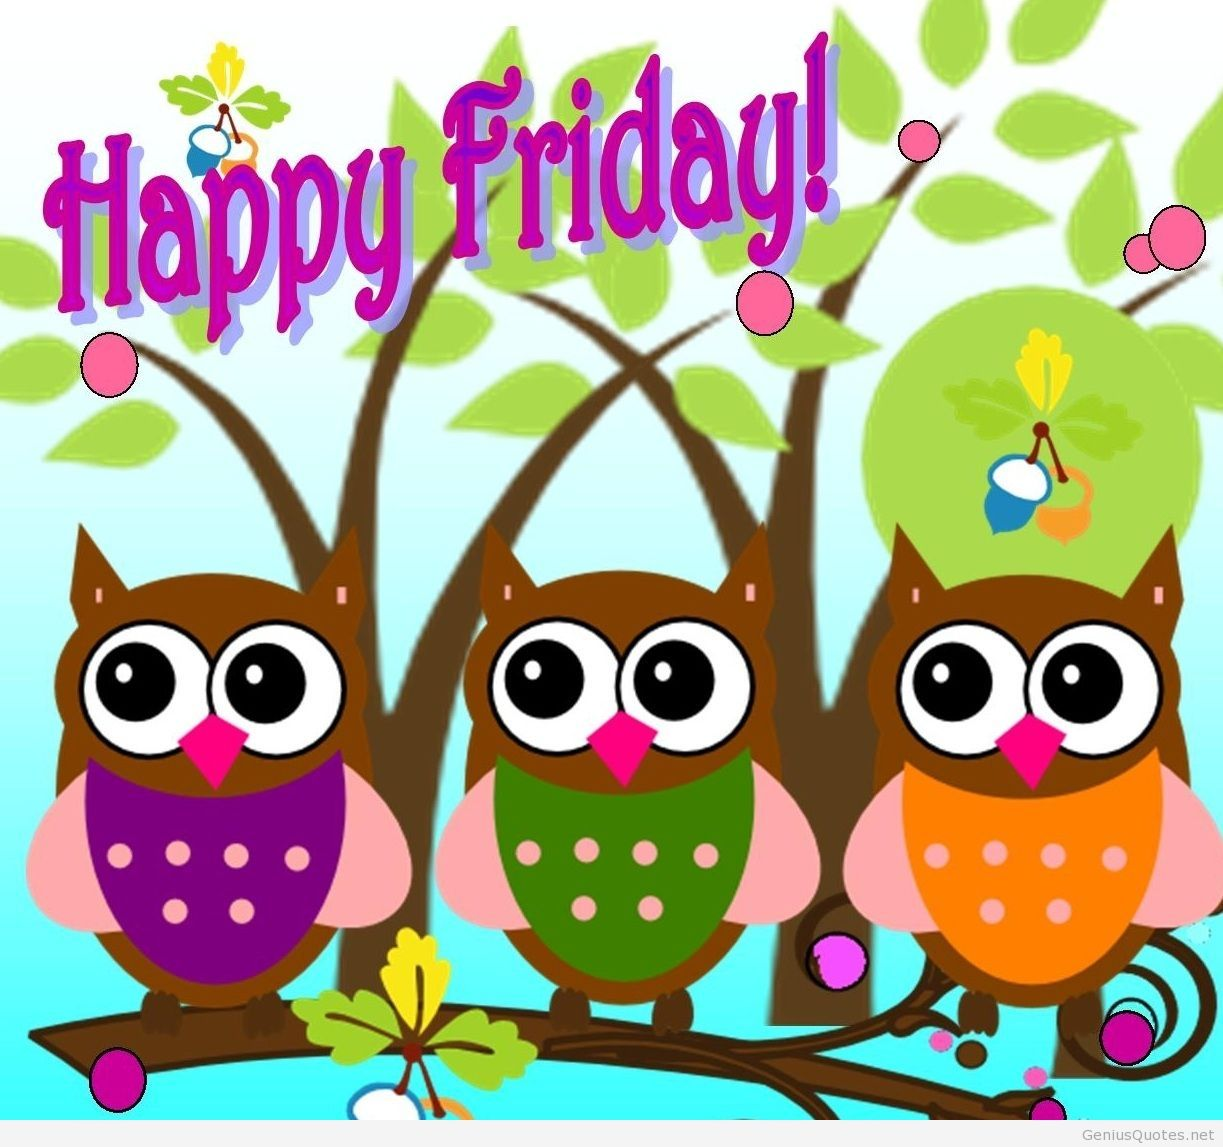 Happy friday clipart images 5 » Clipart Station.